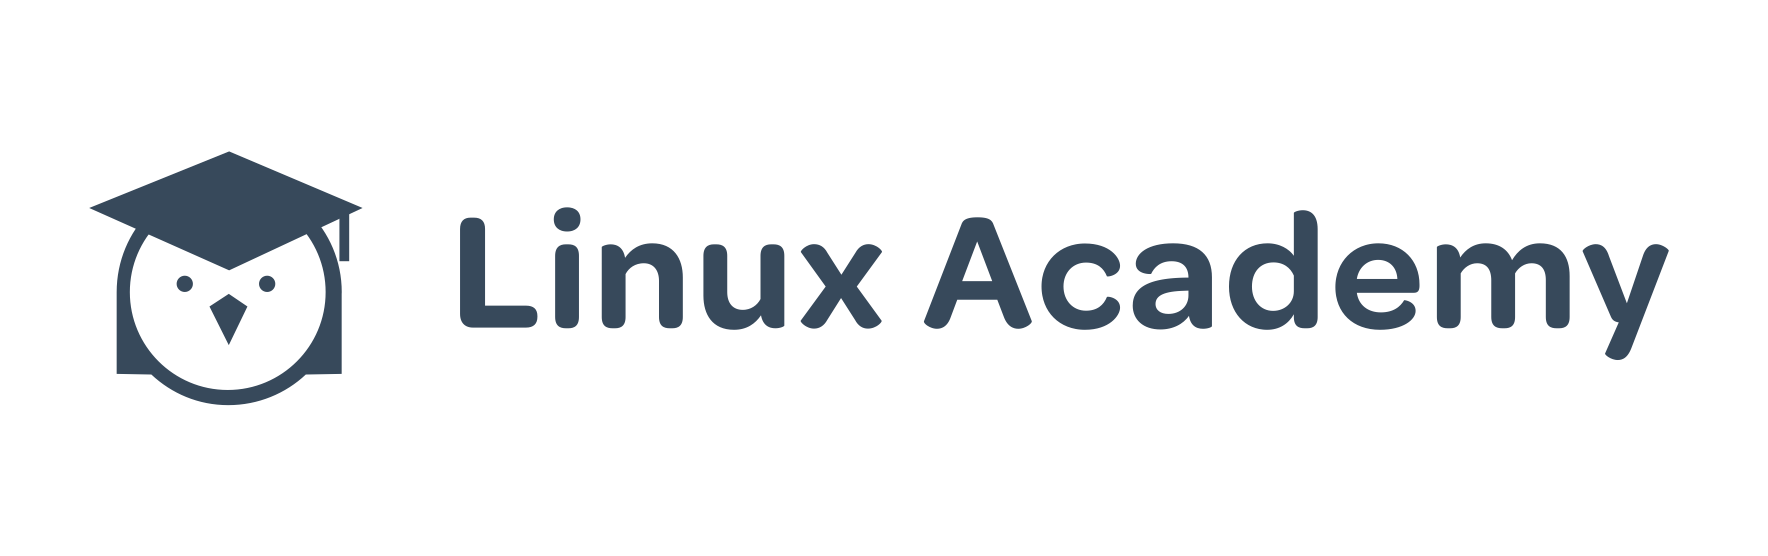 Linux Academy-Updated Logo-Blue